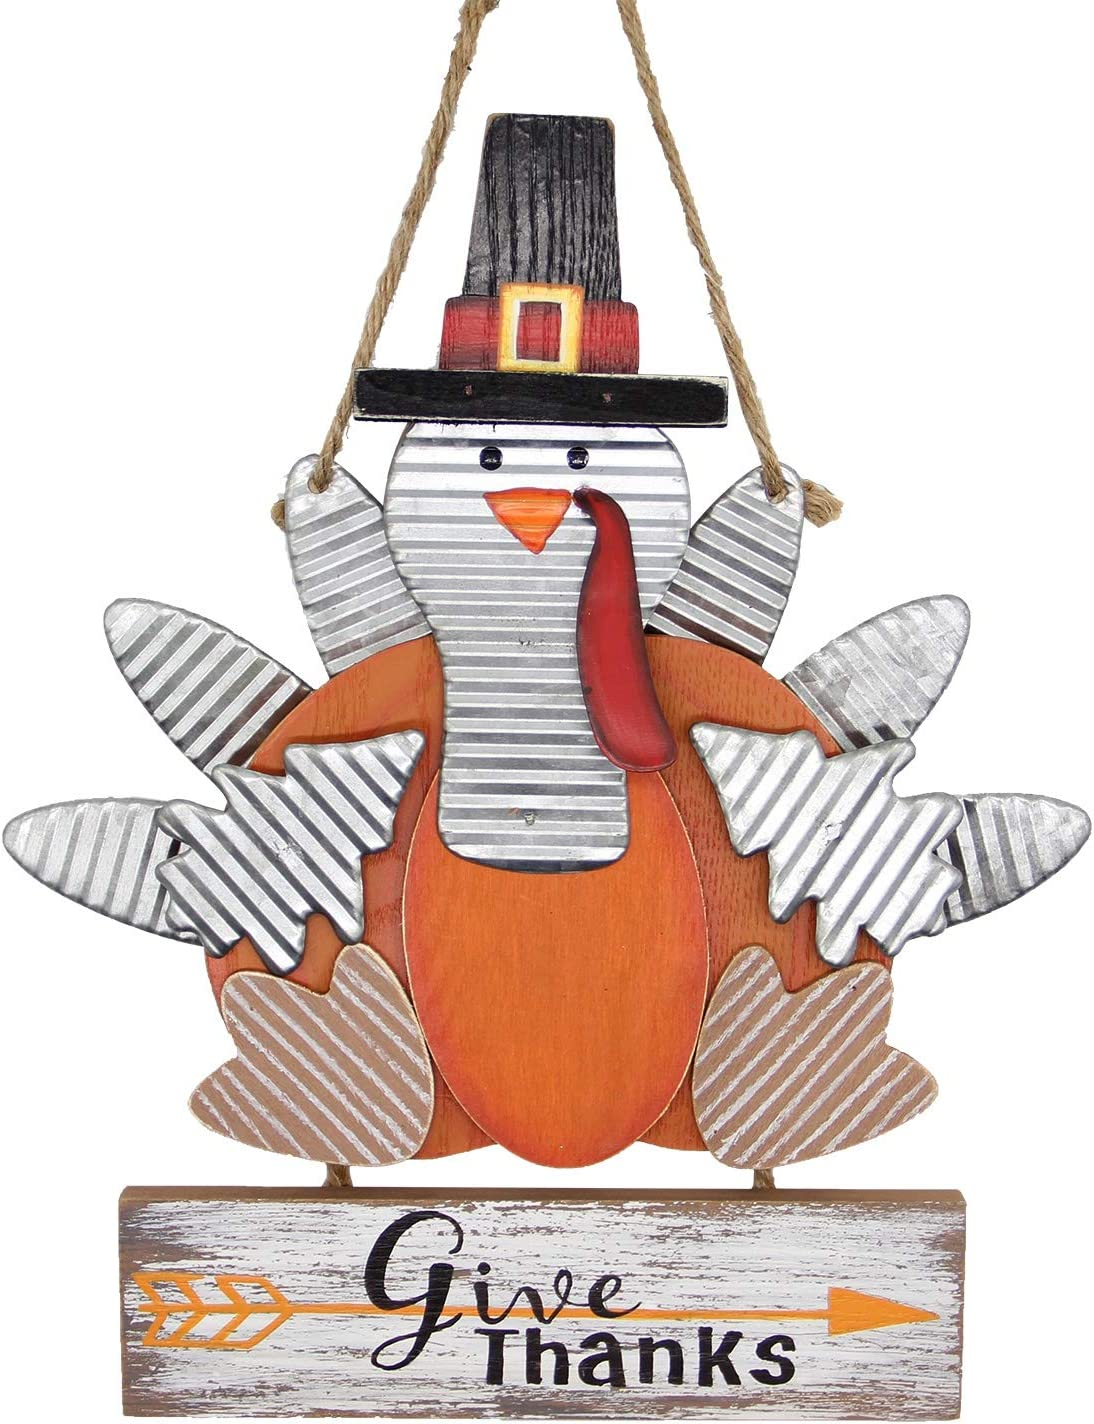 Zcaukya Thanksgiving Turkey Decoration, Wooden Board Carved Give Thanks Indoor Hanging Turkey Decor for Home Office Bedroom Kitchen Thanksgiving Harvest Day Decorations